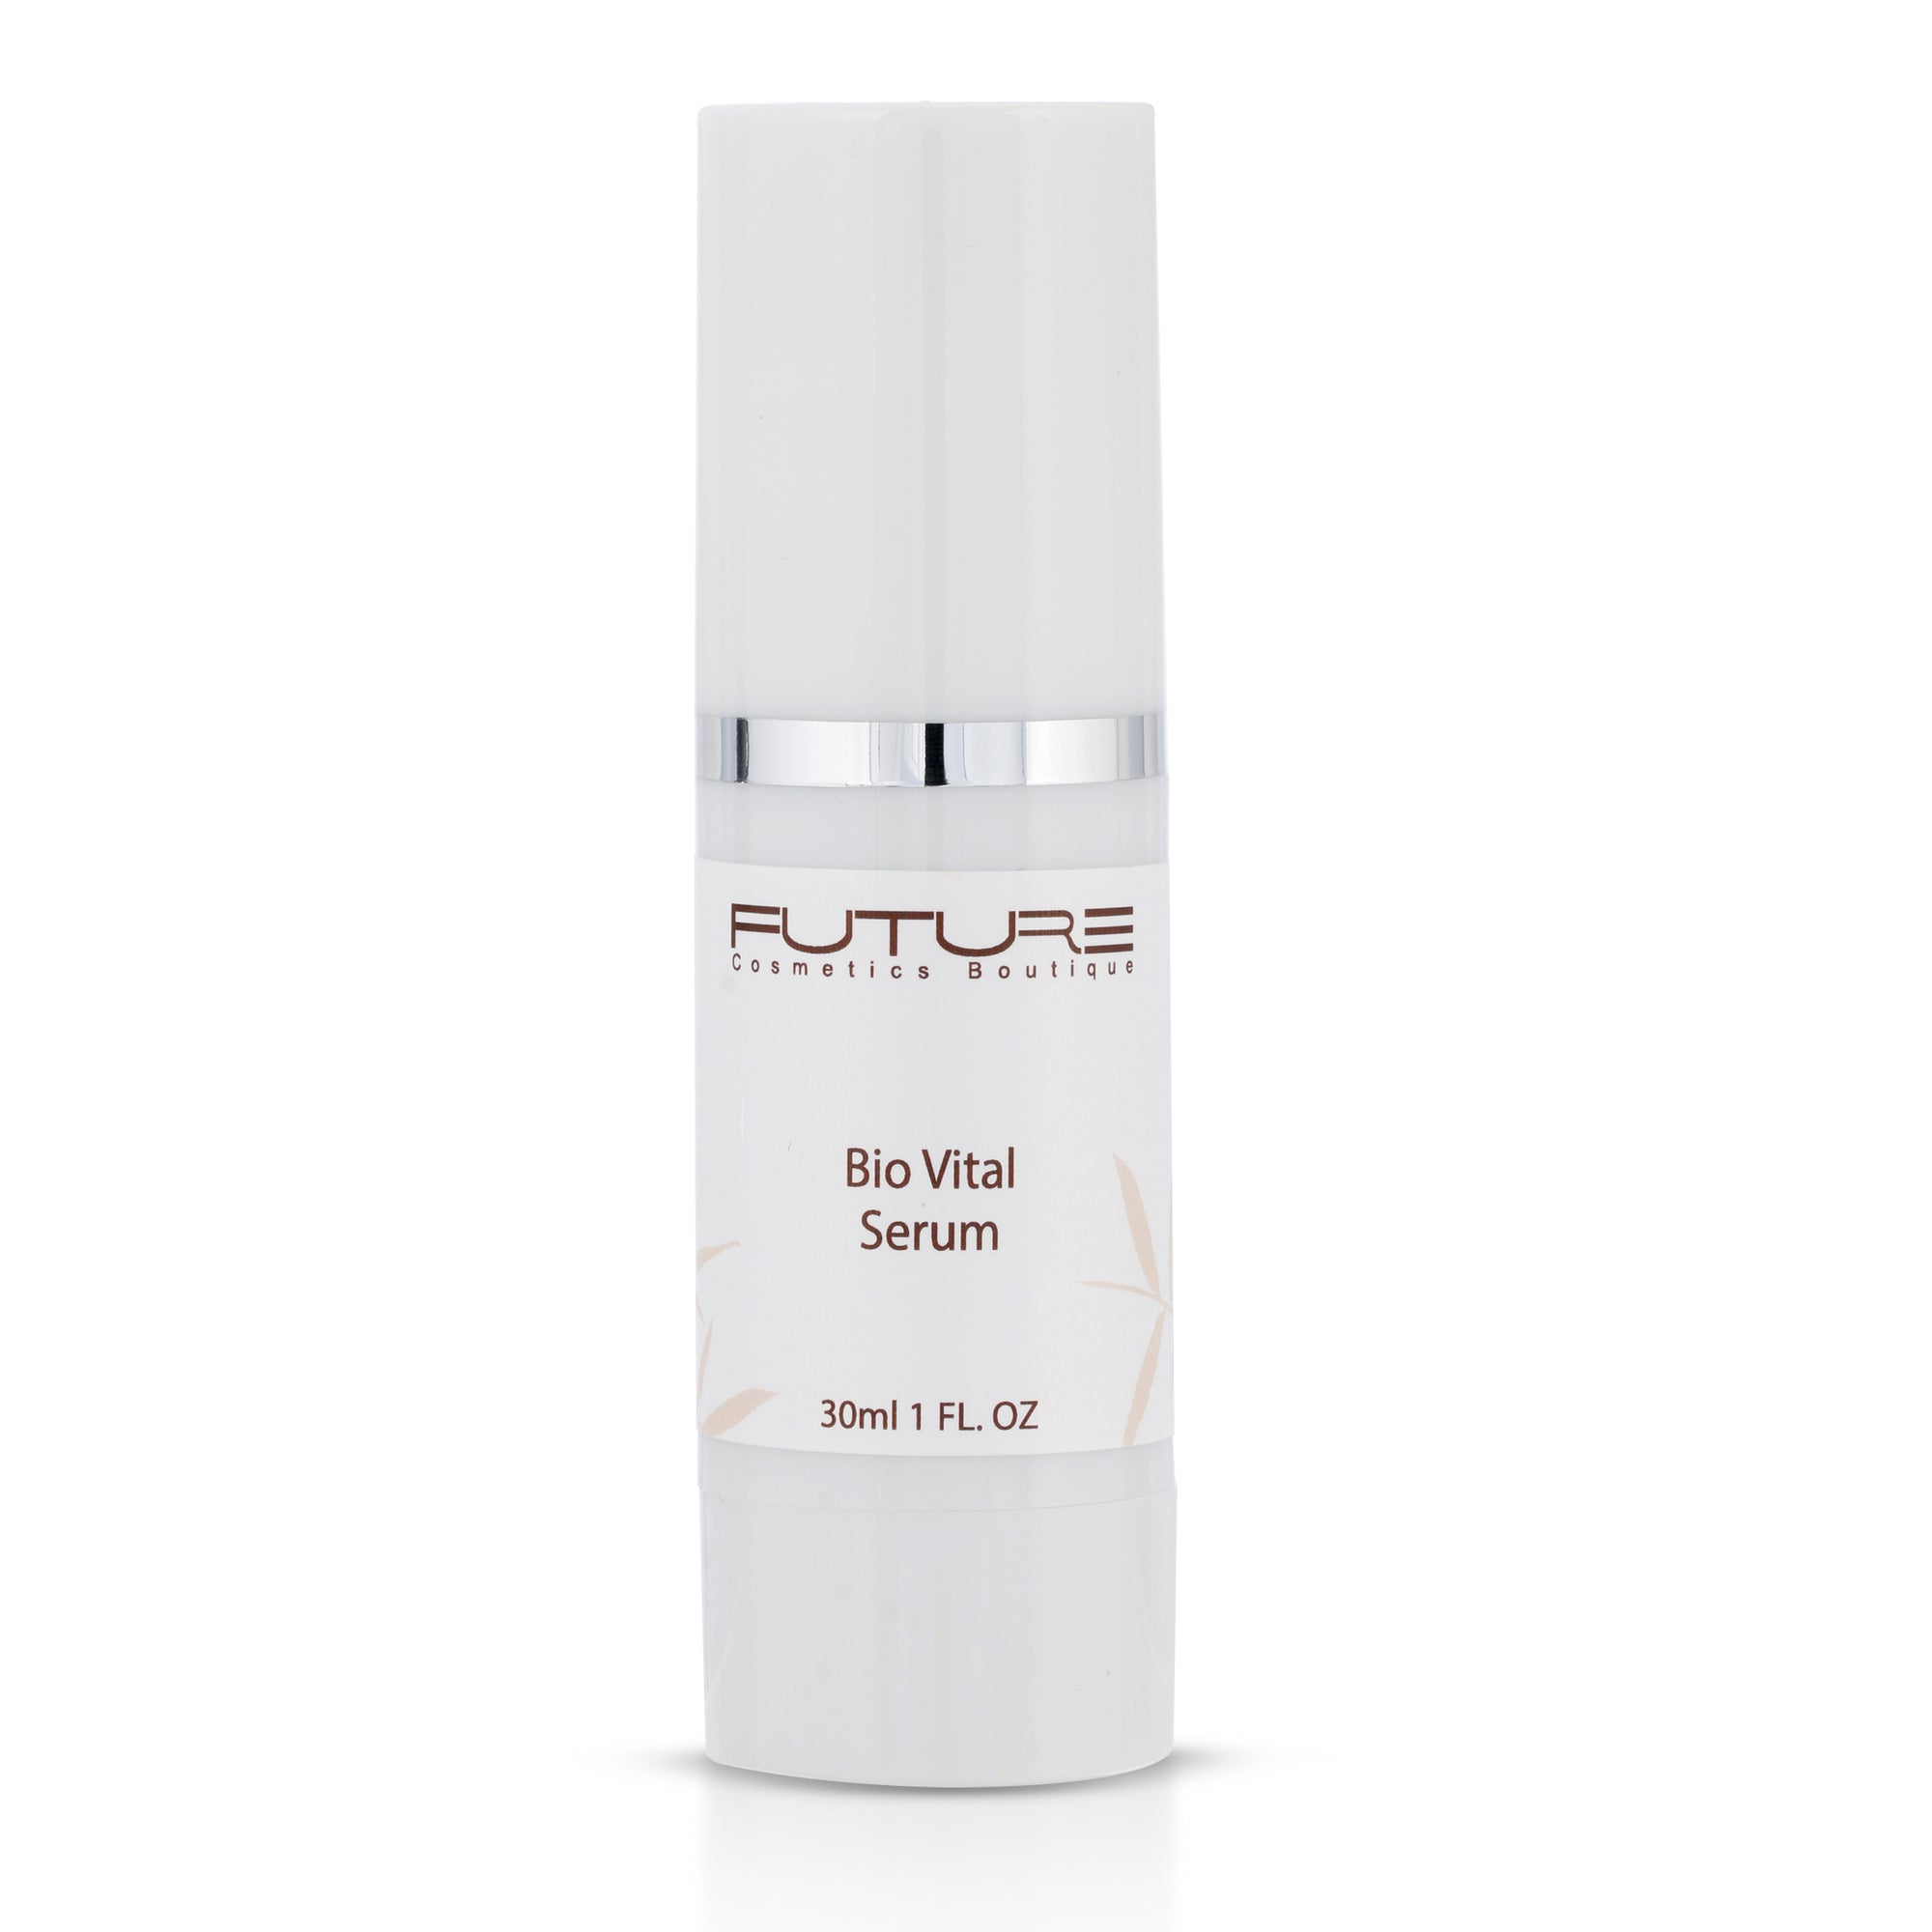 FUTURE - BIO VITAL SERUM 1 FL. OZ.